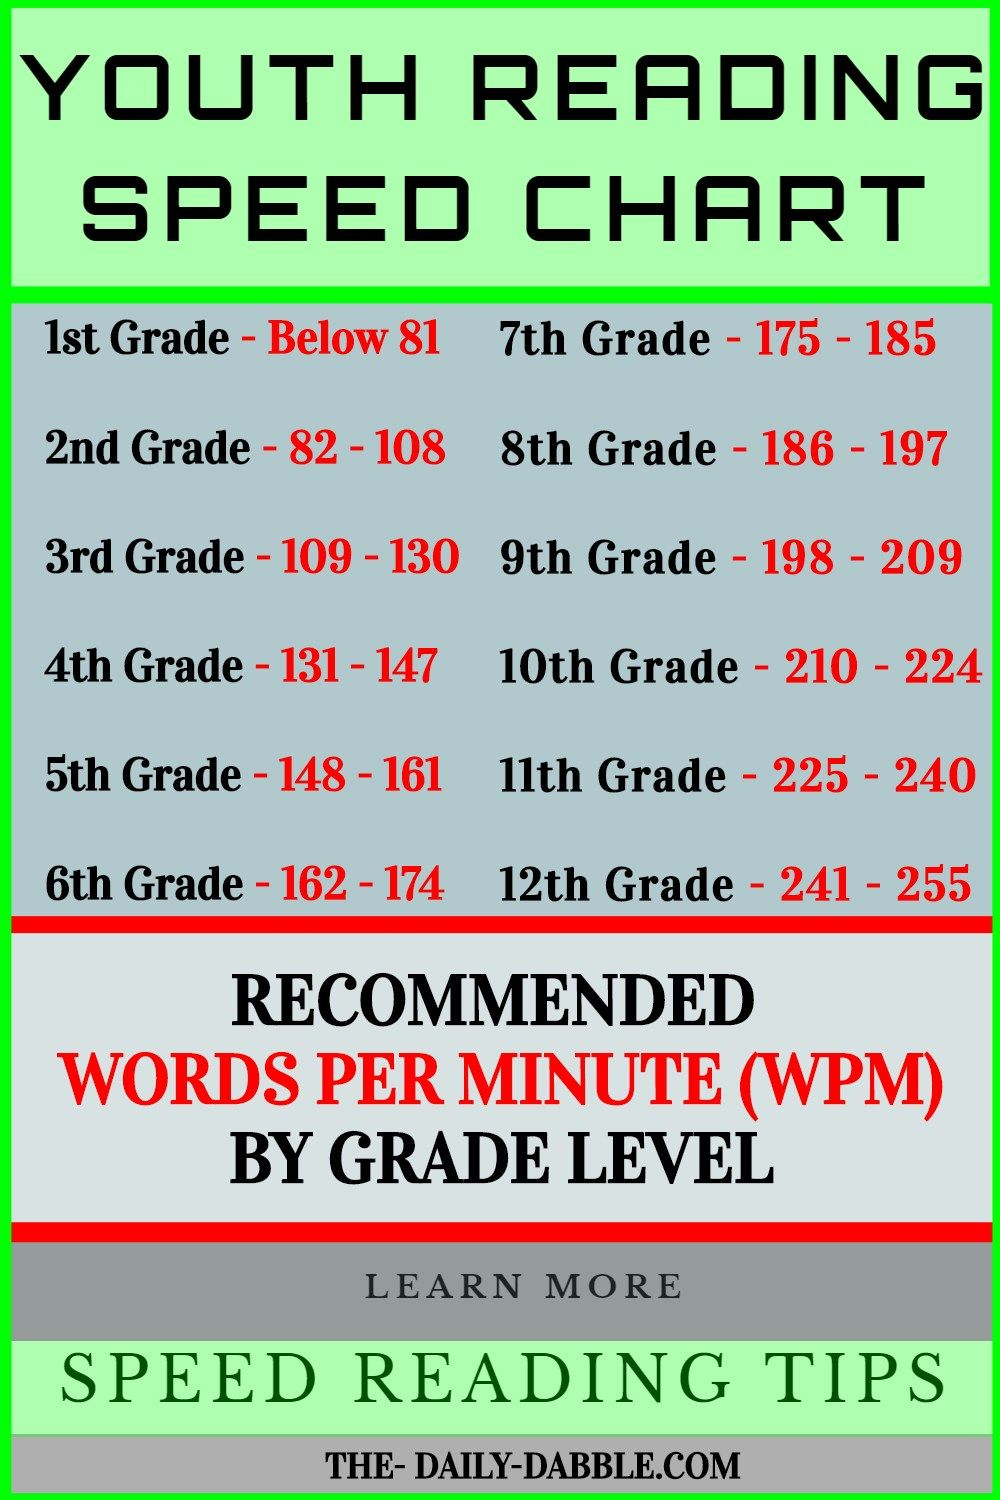 Youth Reading Speed Chart Reading Comprehension Posters Speed Reading Reading